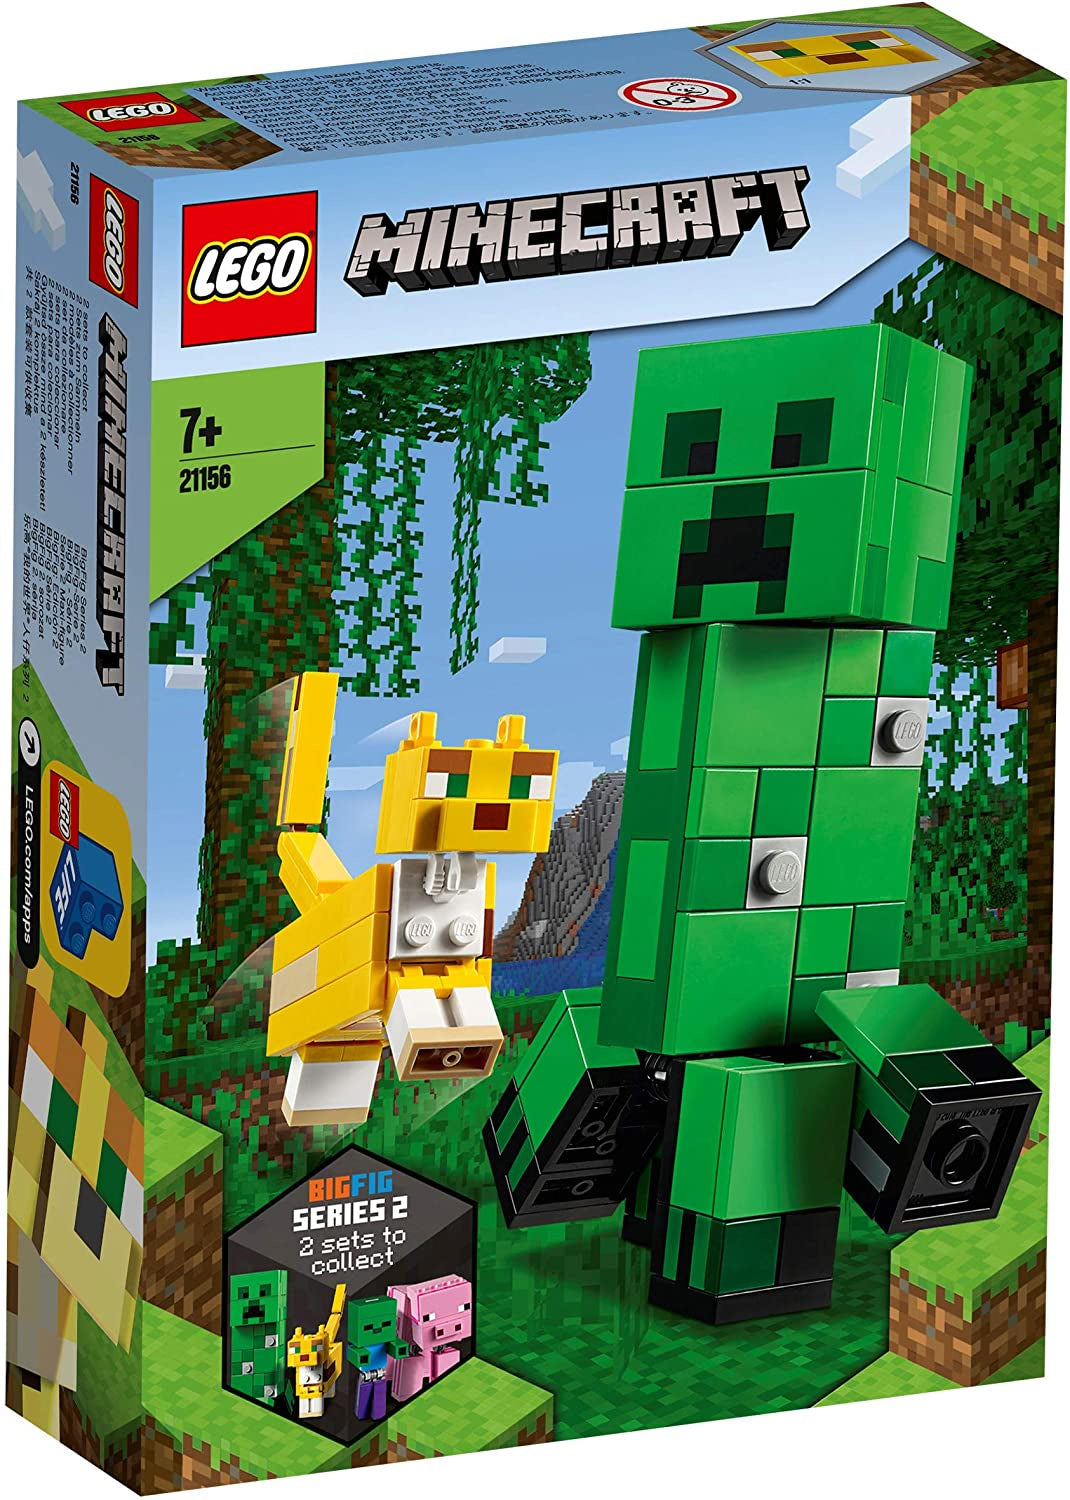 Lego Minecraft 21156 Big Fig Creeper And Ocelot